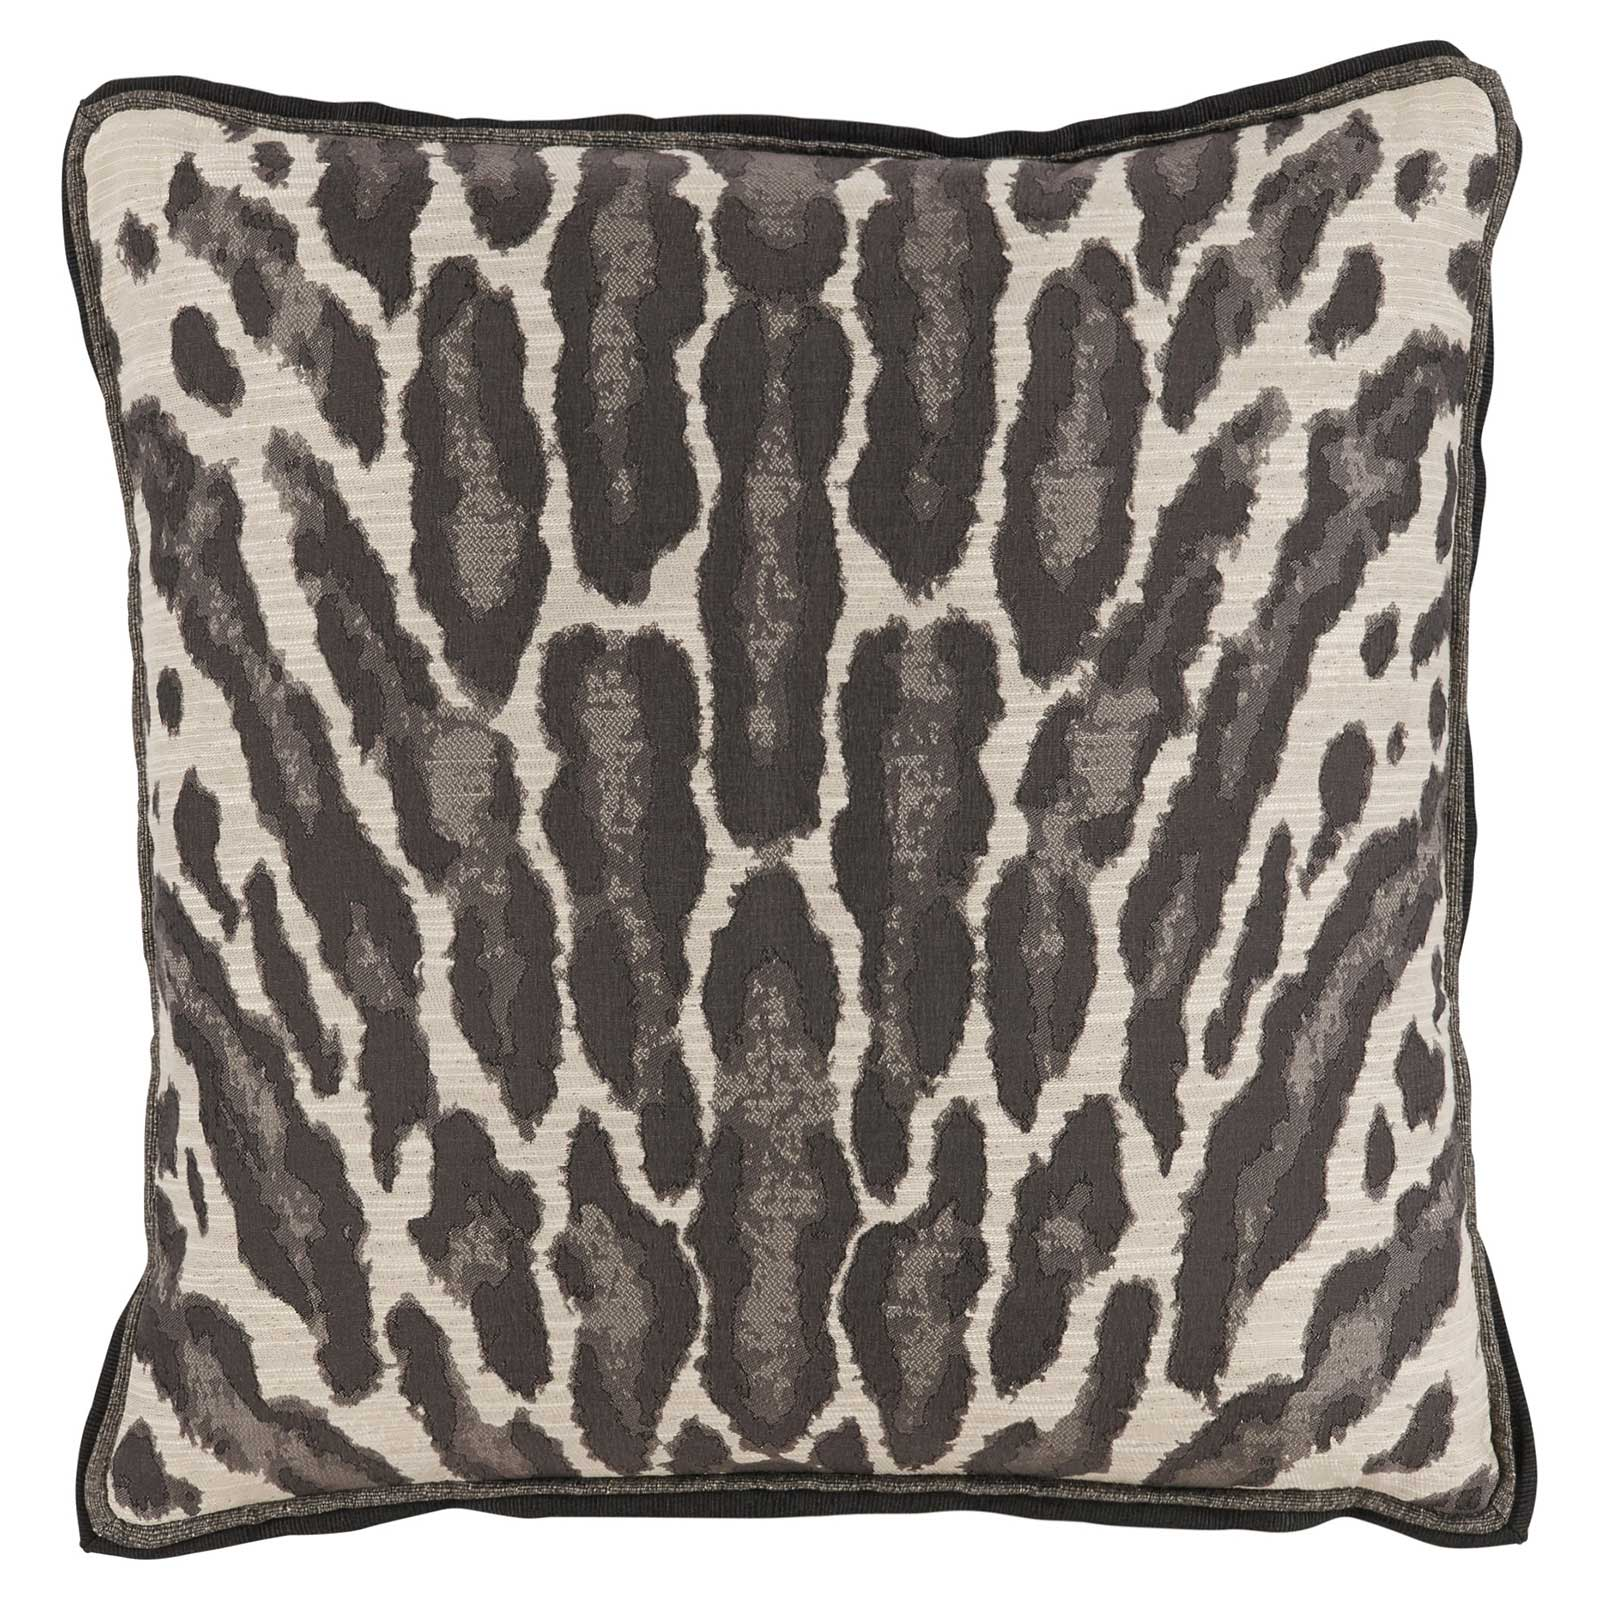 Vivy Global Regency Abstract Leopard Print Grey Pillow - 22x22